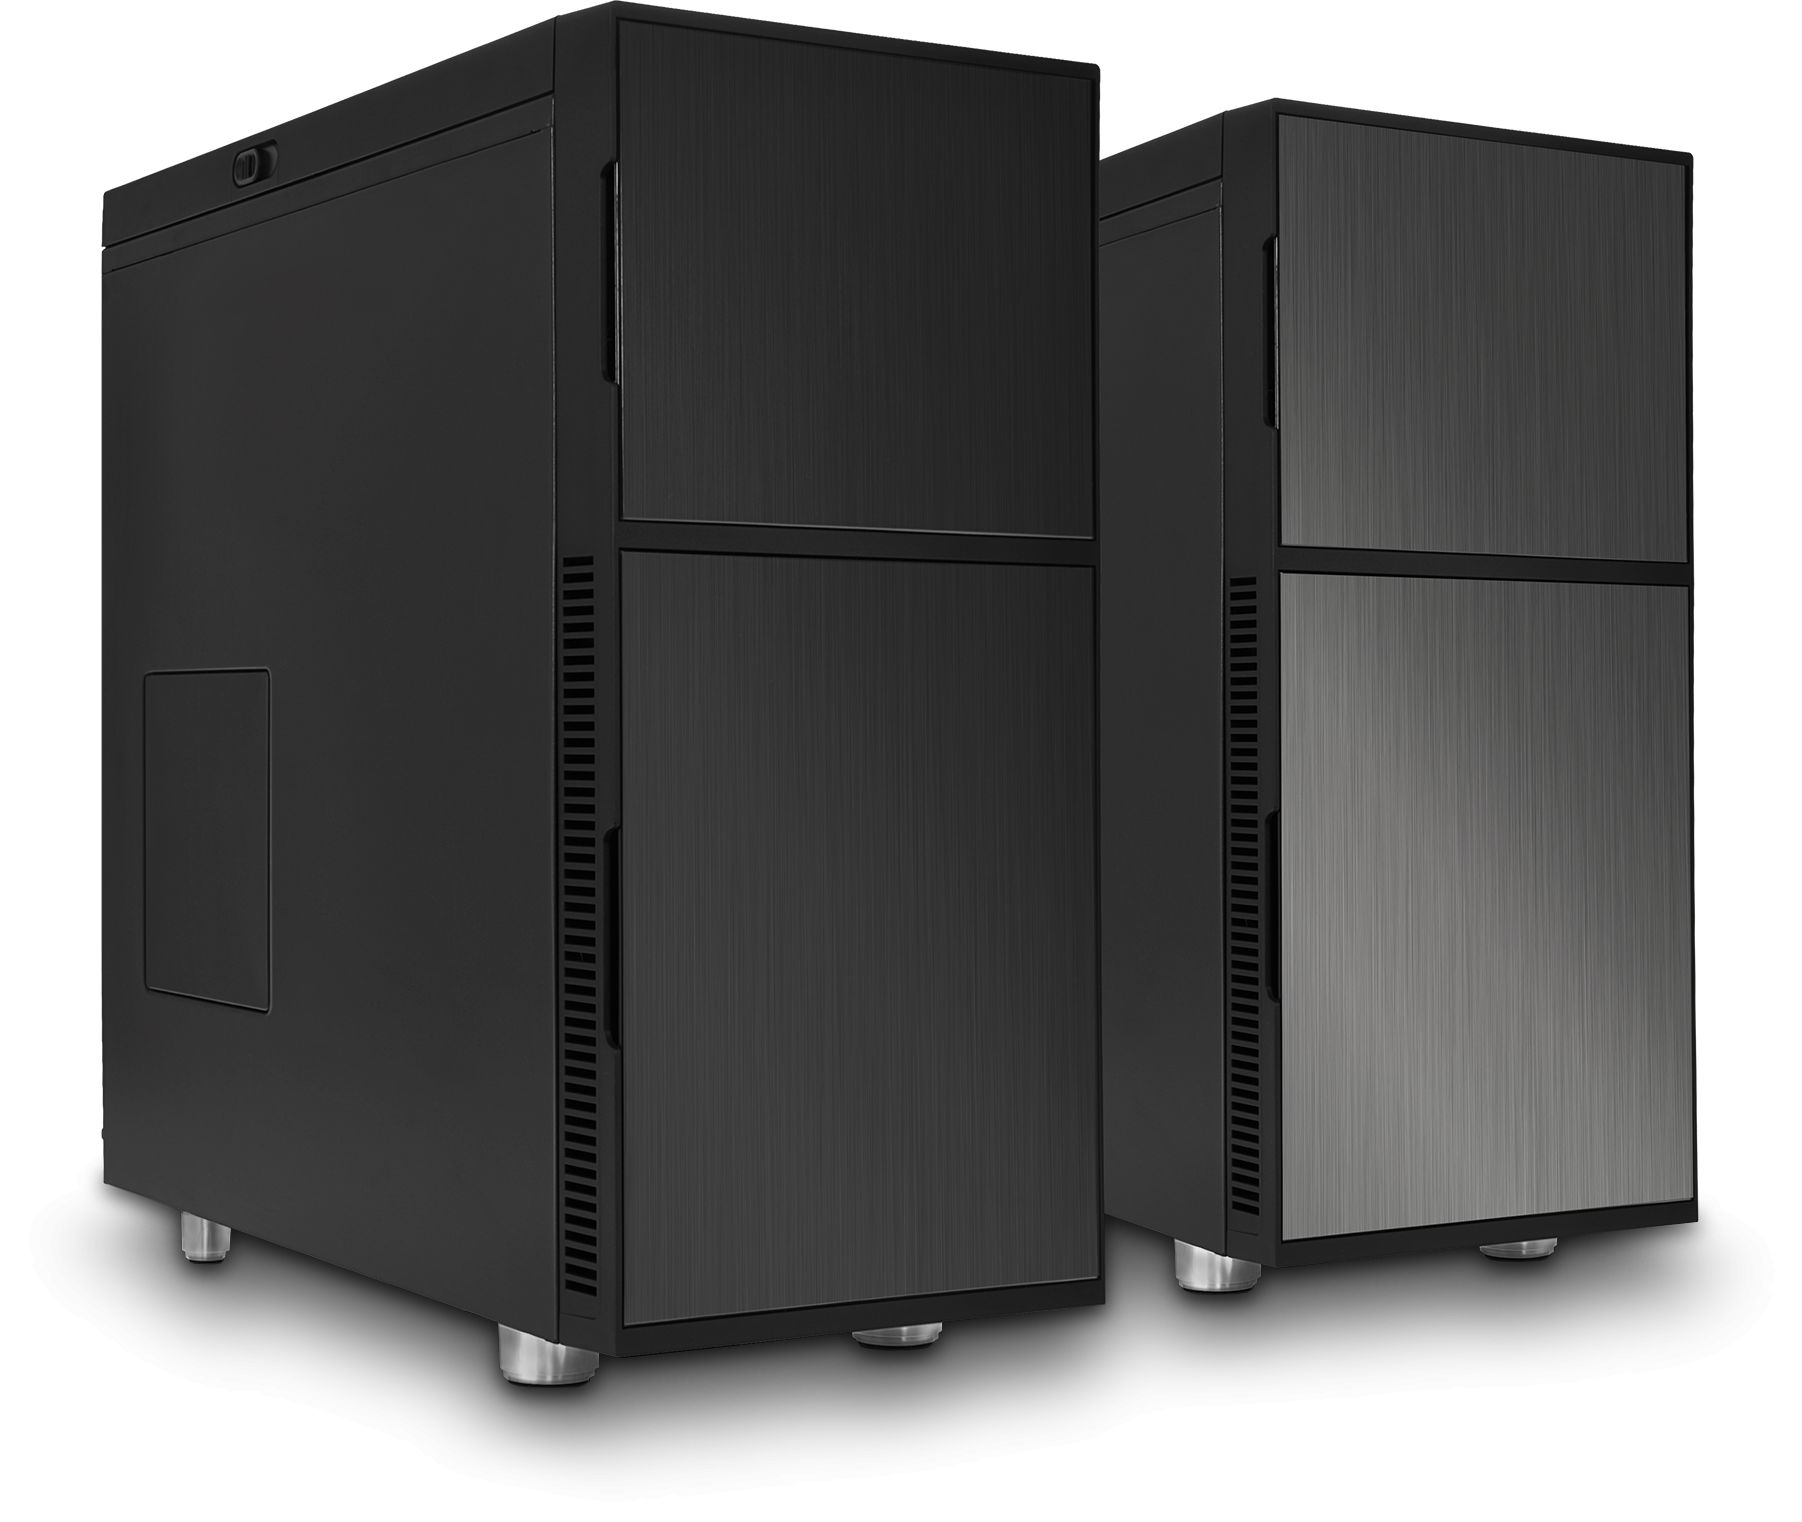 Nanoxia Deep Silence 1 Ultimate Low Noise Pc Cases